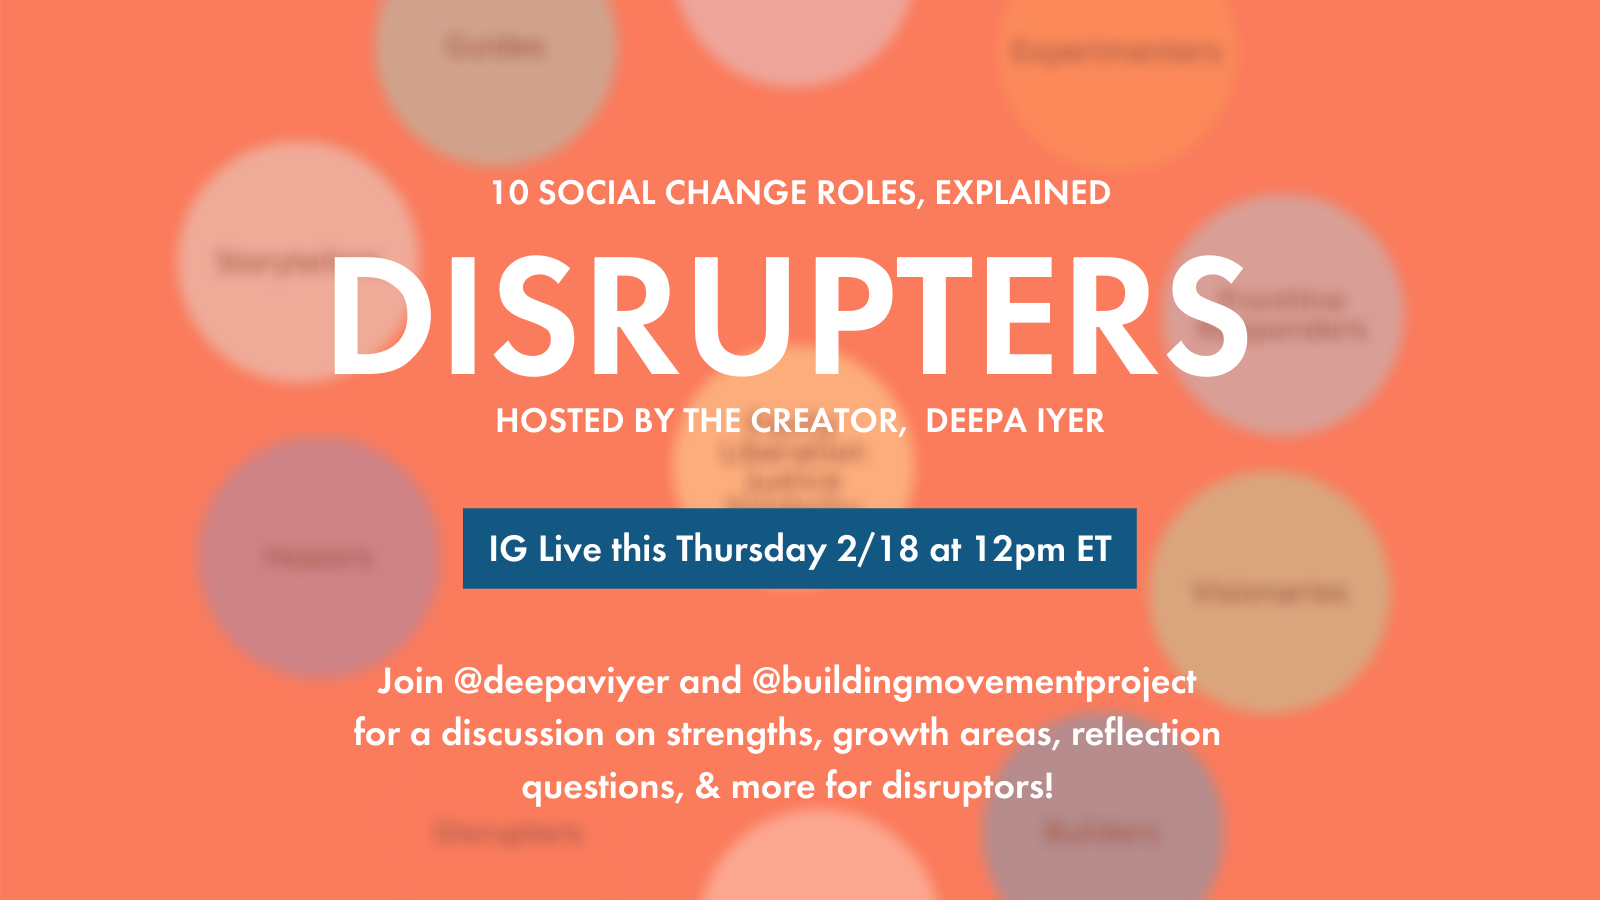 Disrupters, Explained